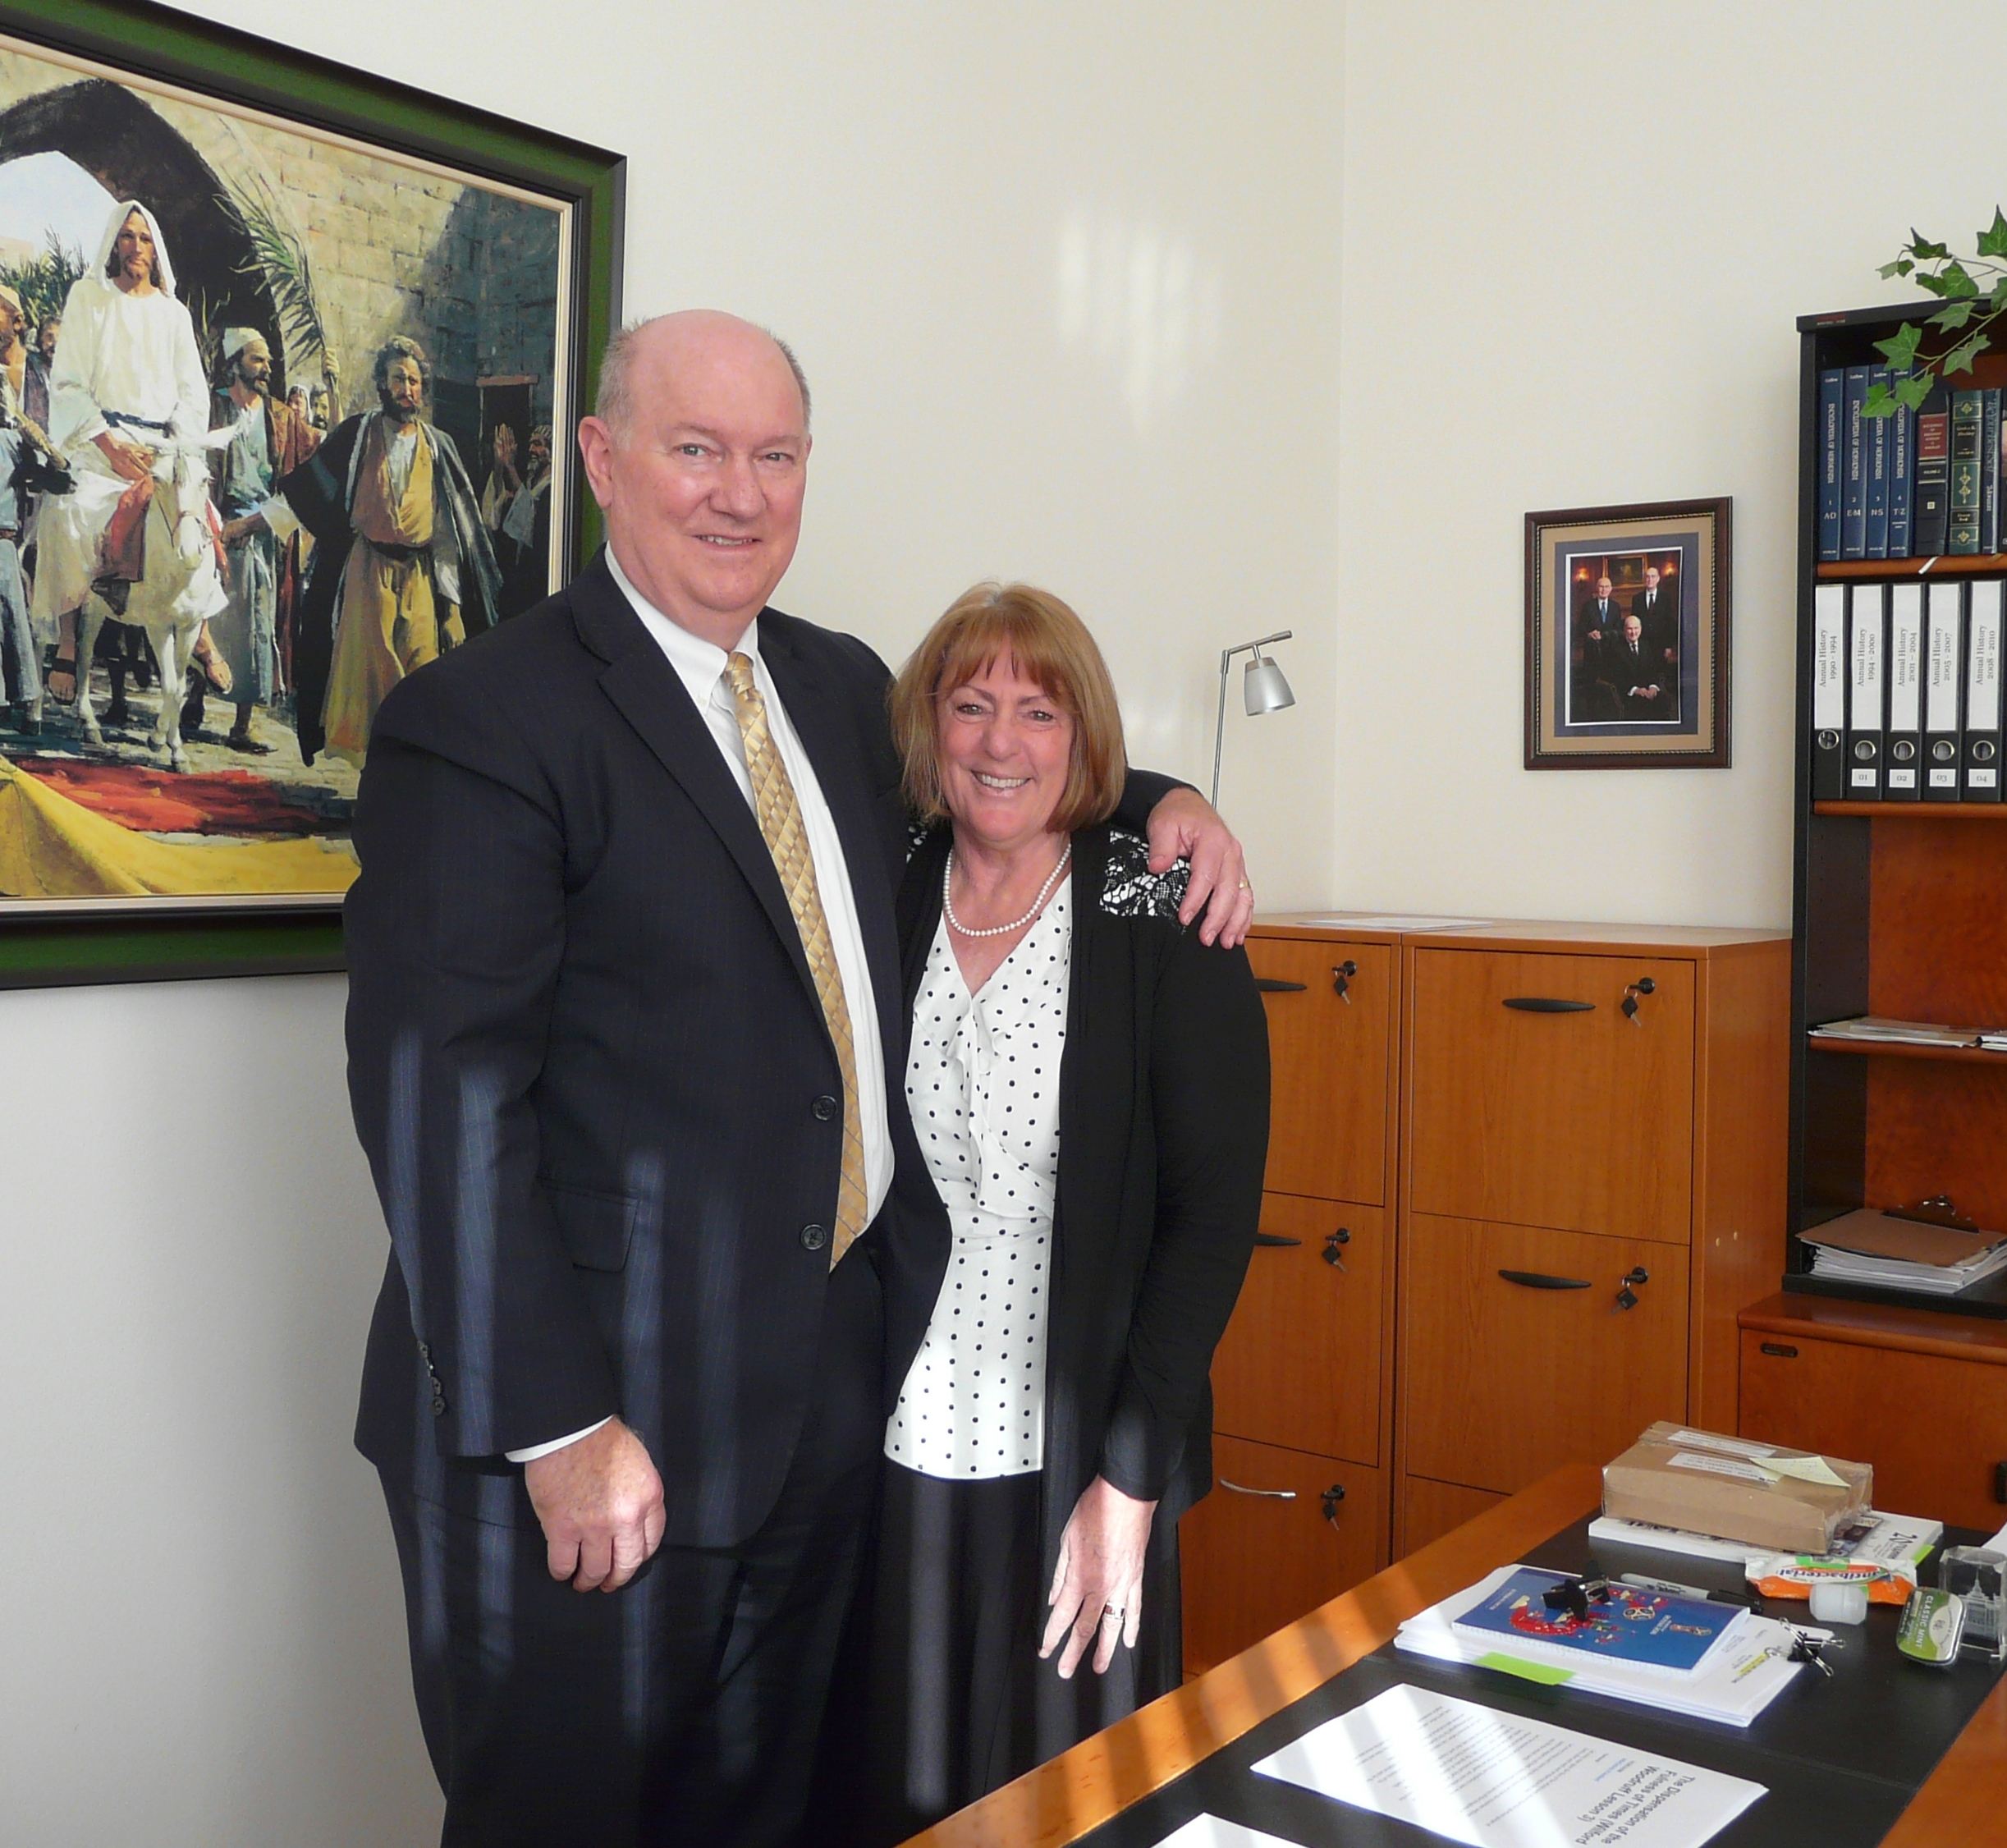 President Stephen Davis and Sister Mary Davis oversee missionary work in Bulgaria and other countries in the Bulgaria-Central Eurasian Mission, employing the help of technology to span distances